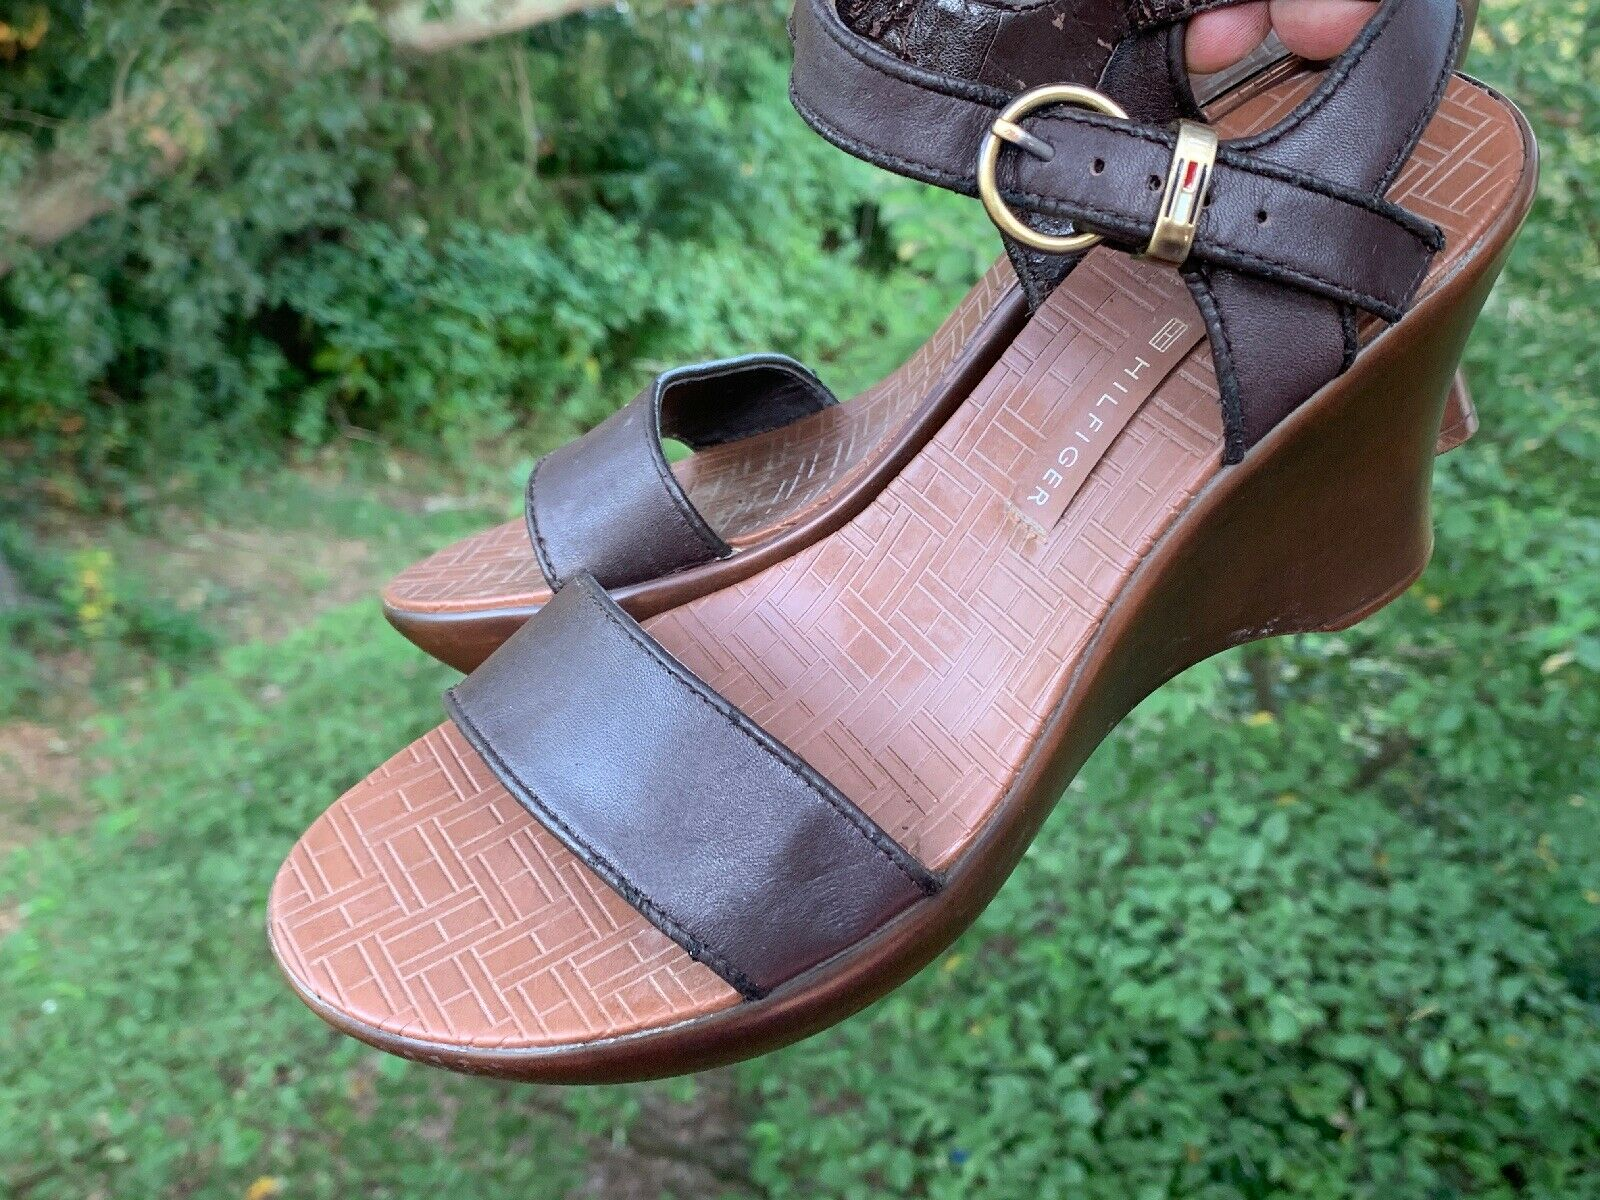 TOMMY HILFIGER Leather Slingbacks Clogs Mules Wed… - image 8